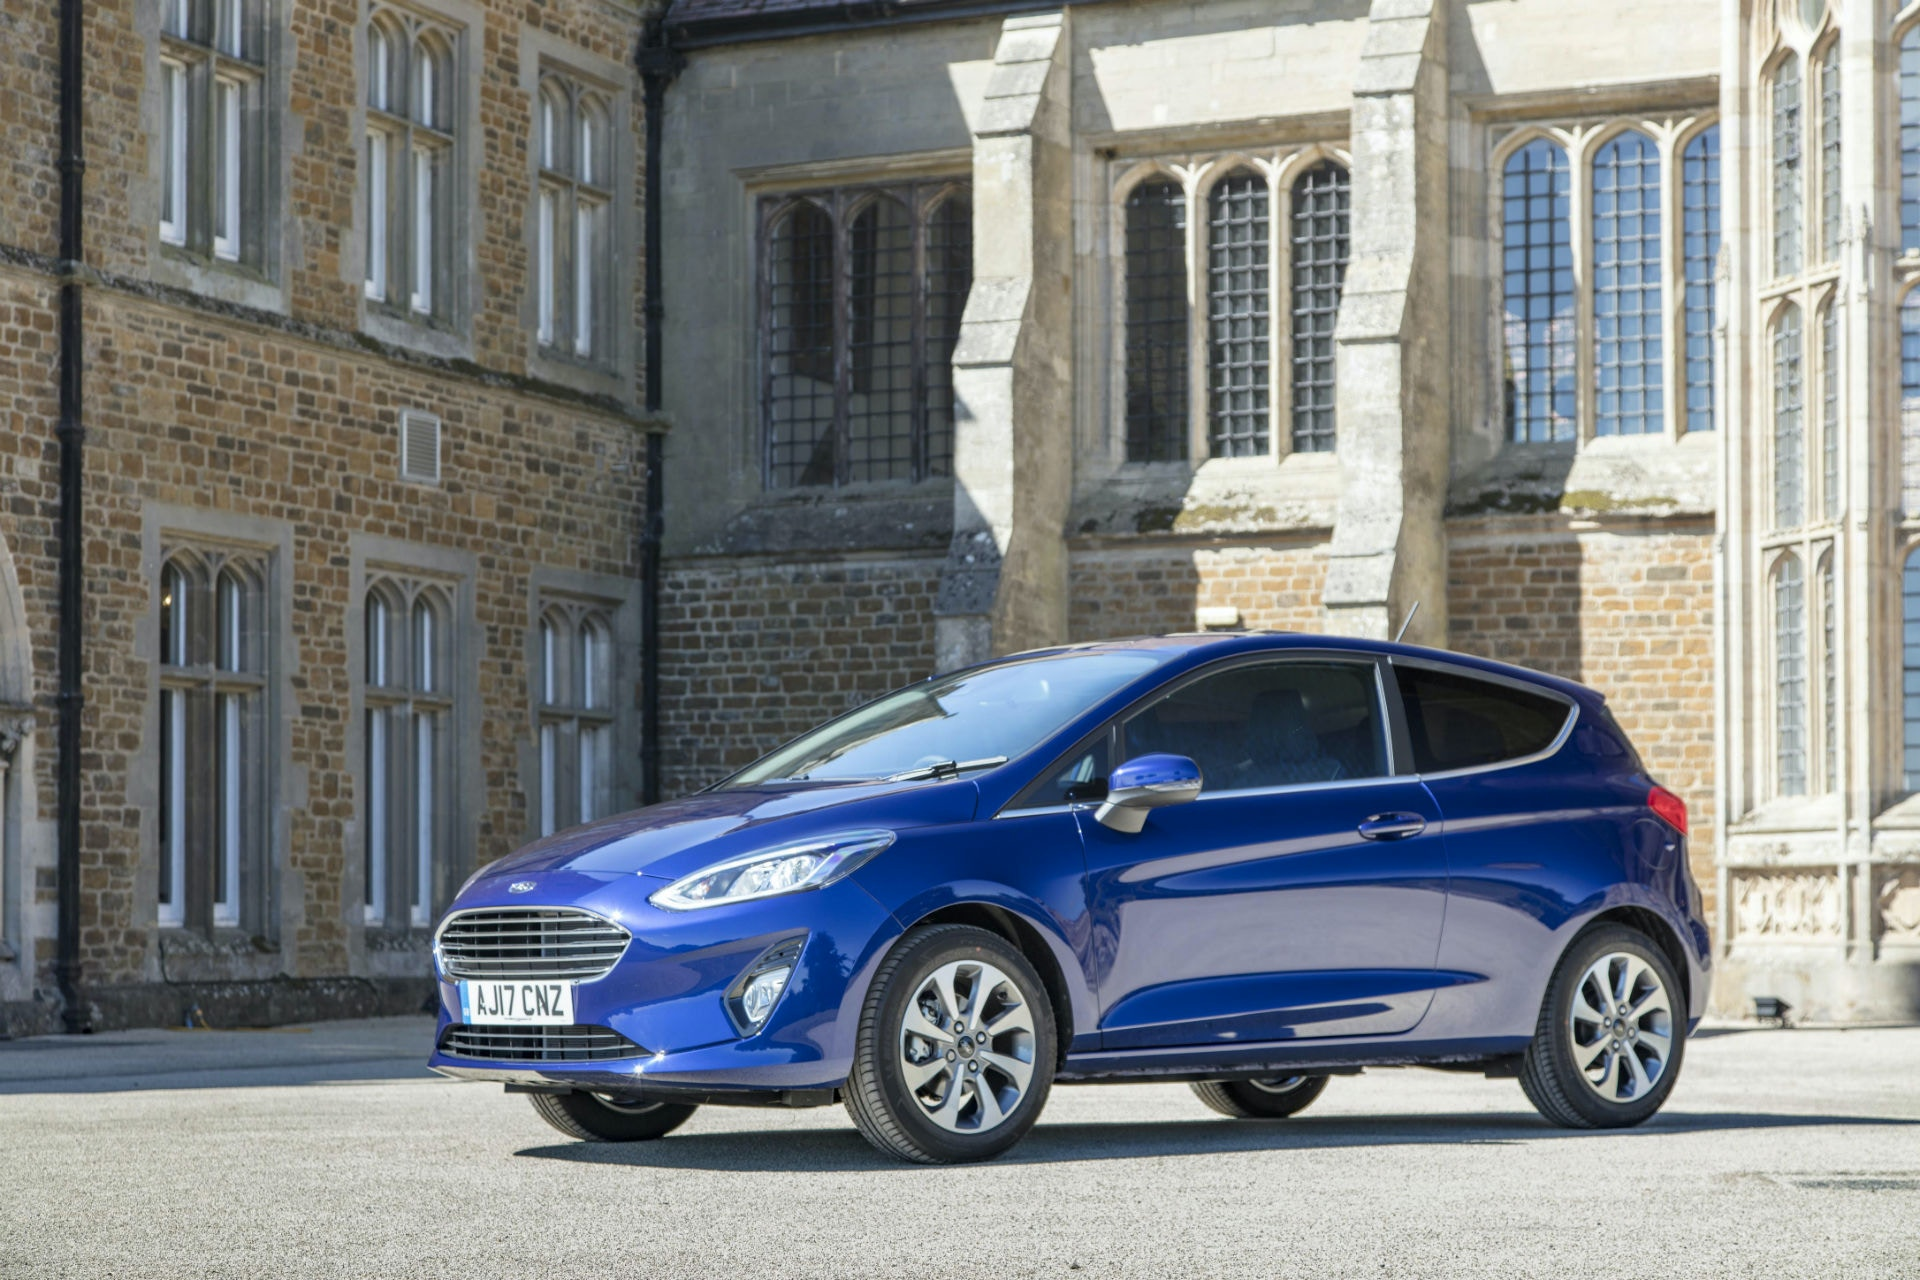 One of the UK's favourite cars, the Ford Fiesta is a steal at less than £10,000.